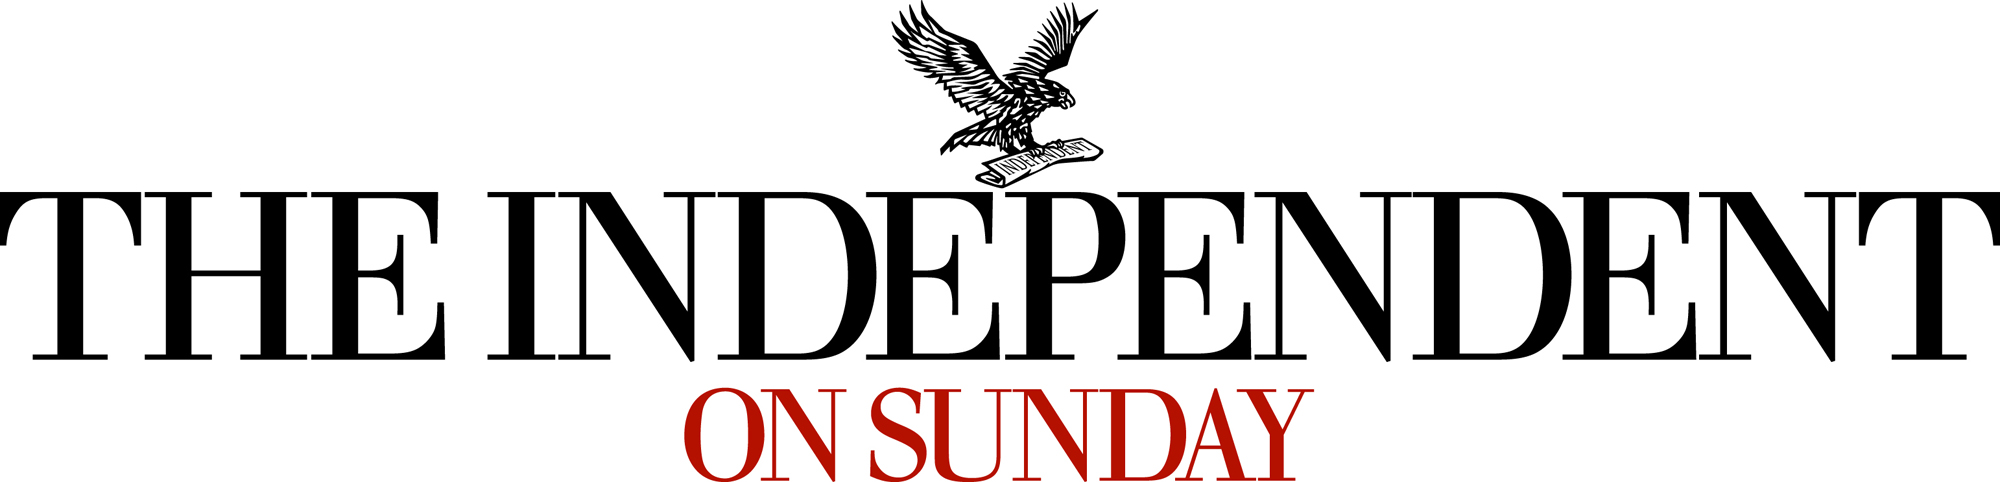 The Independent on Sunday-1